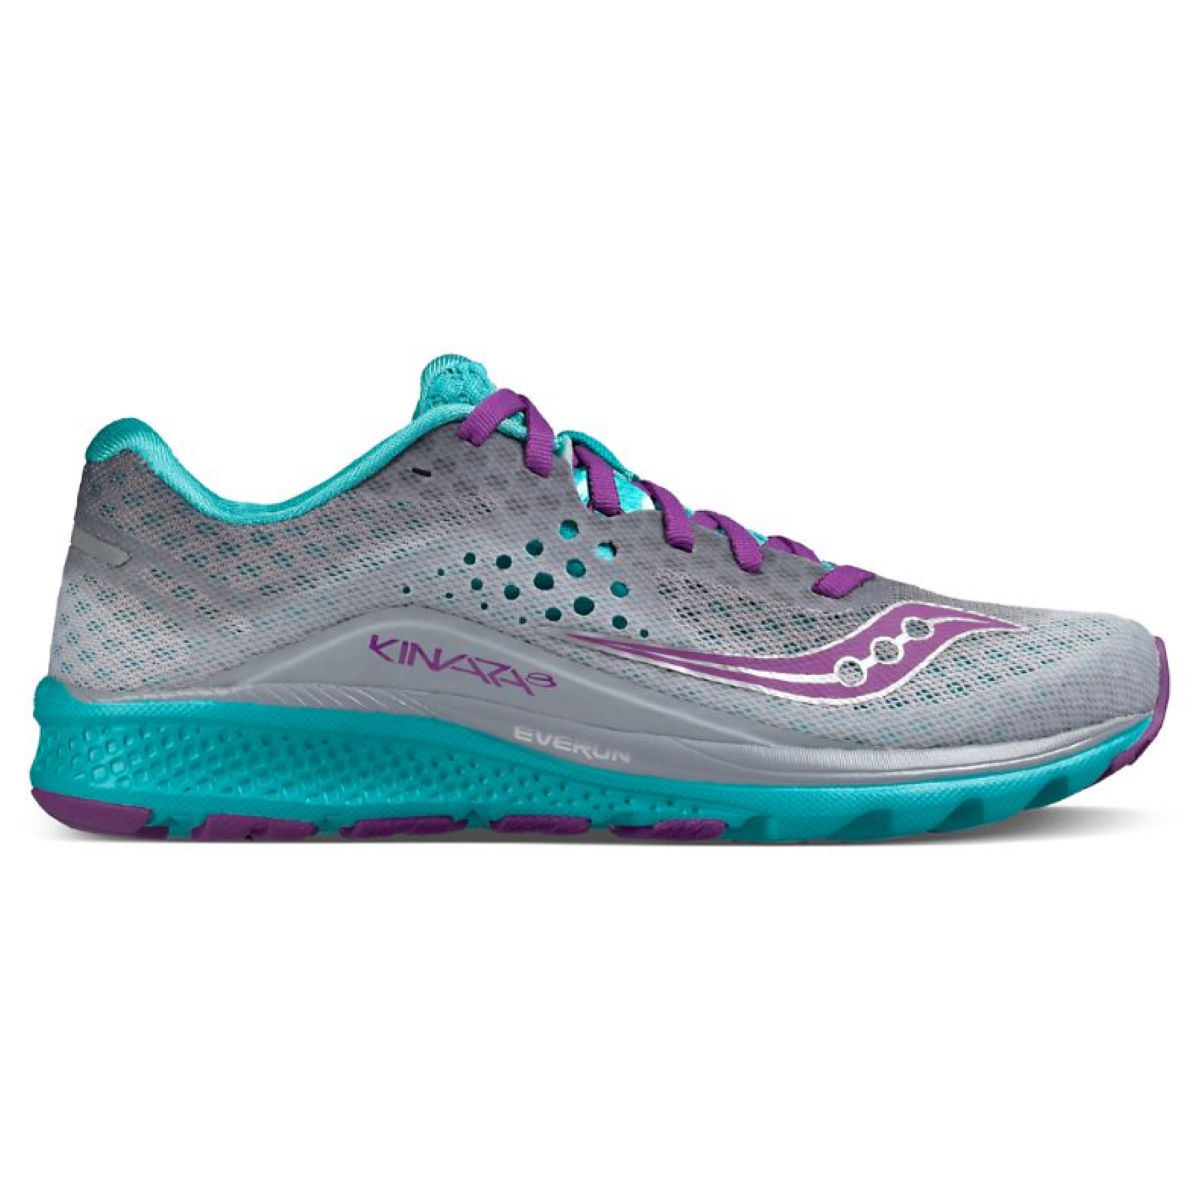 Chaussures Femme Saucony Kinvara 8 - UK 5 Grey / Teal / Purple